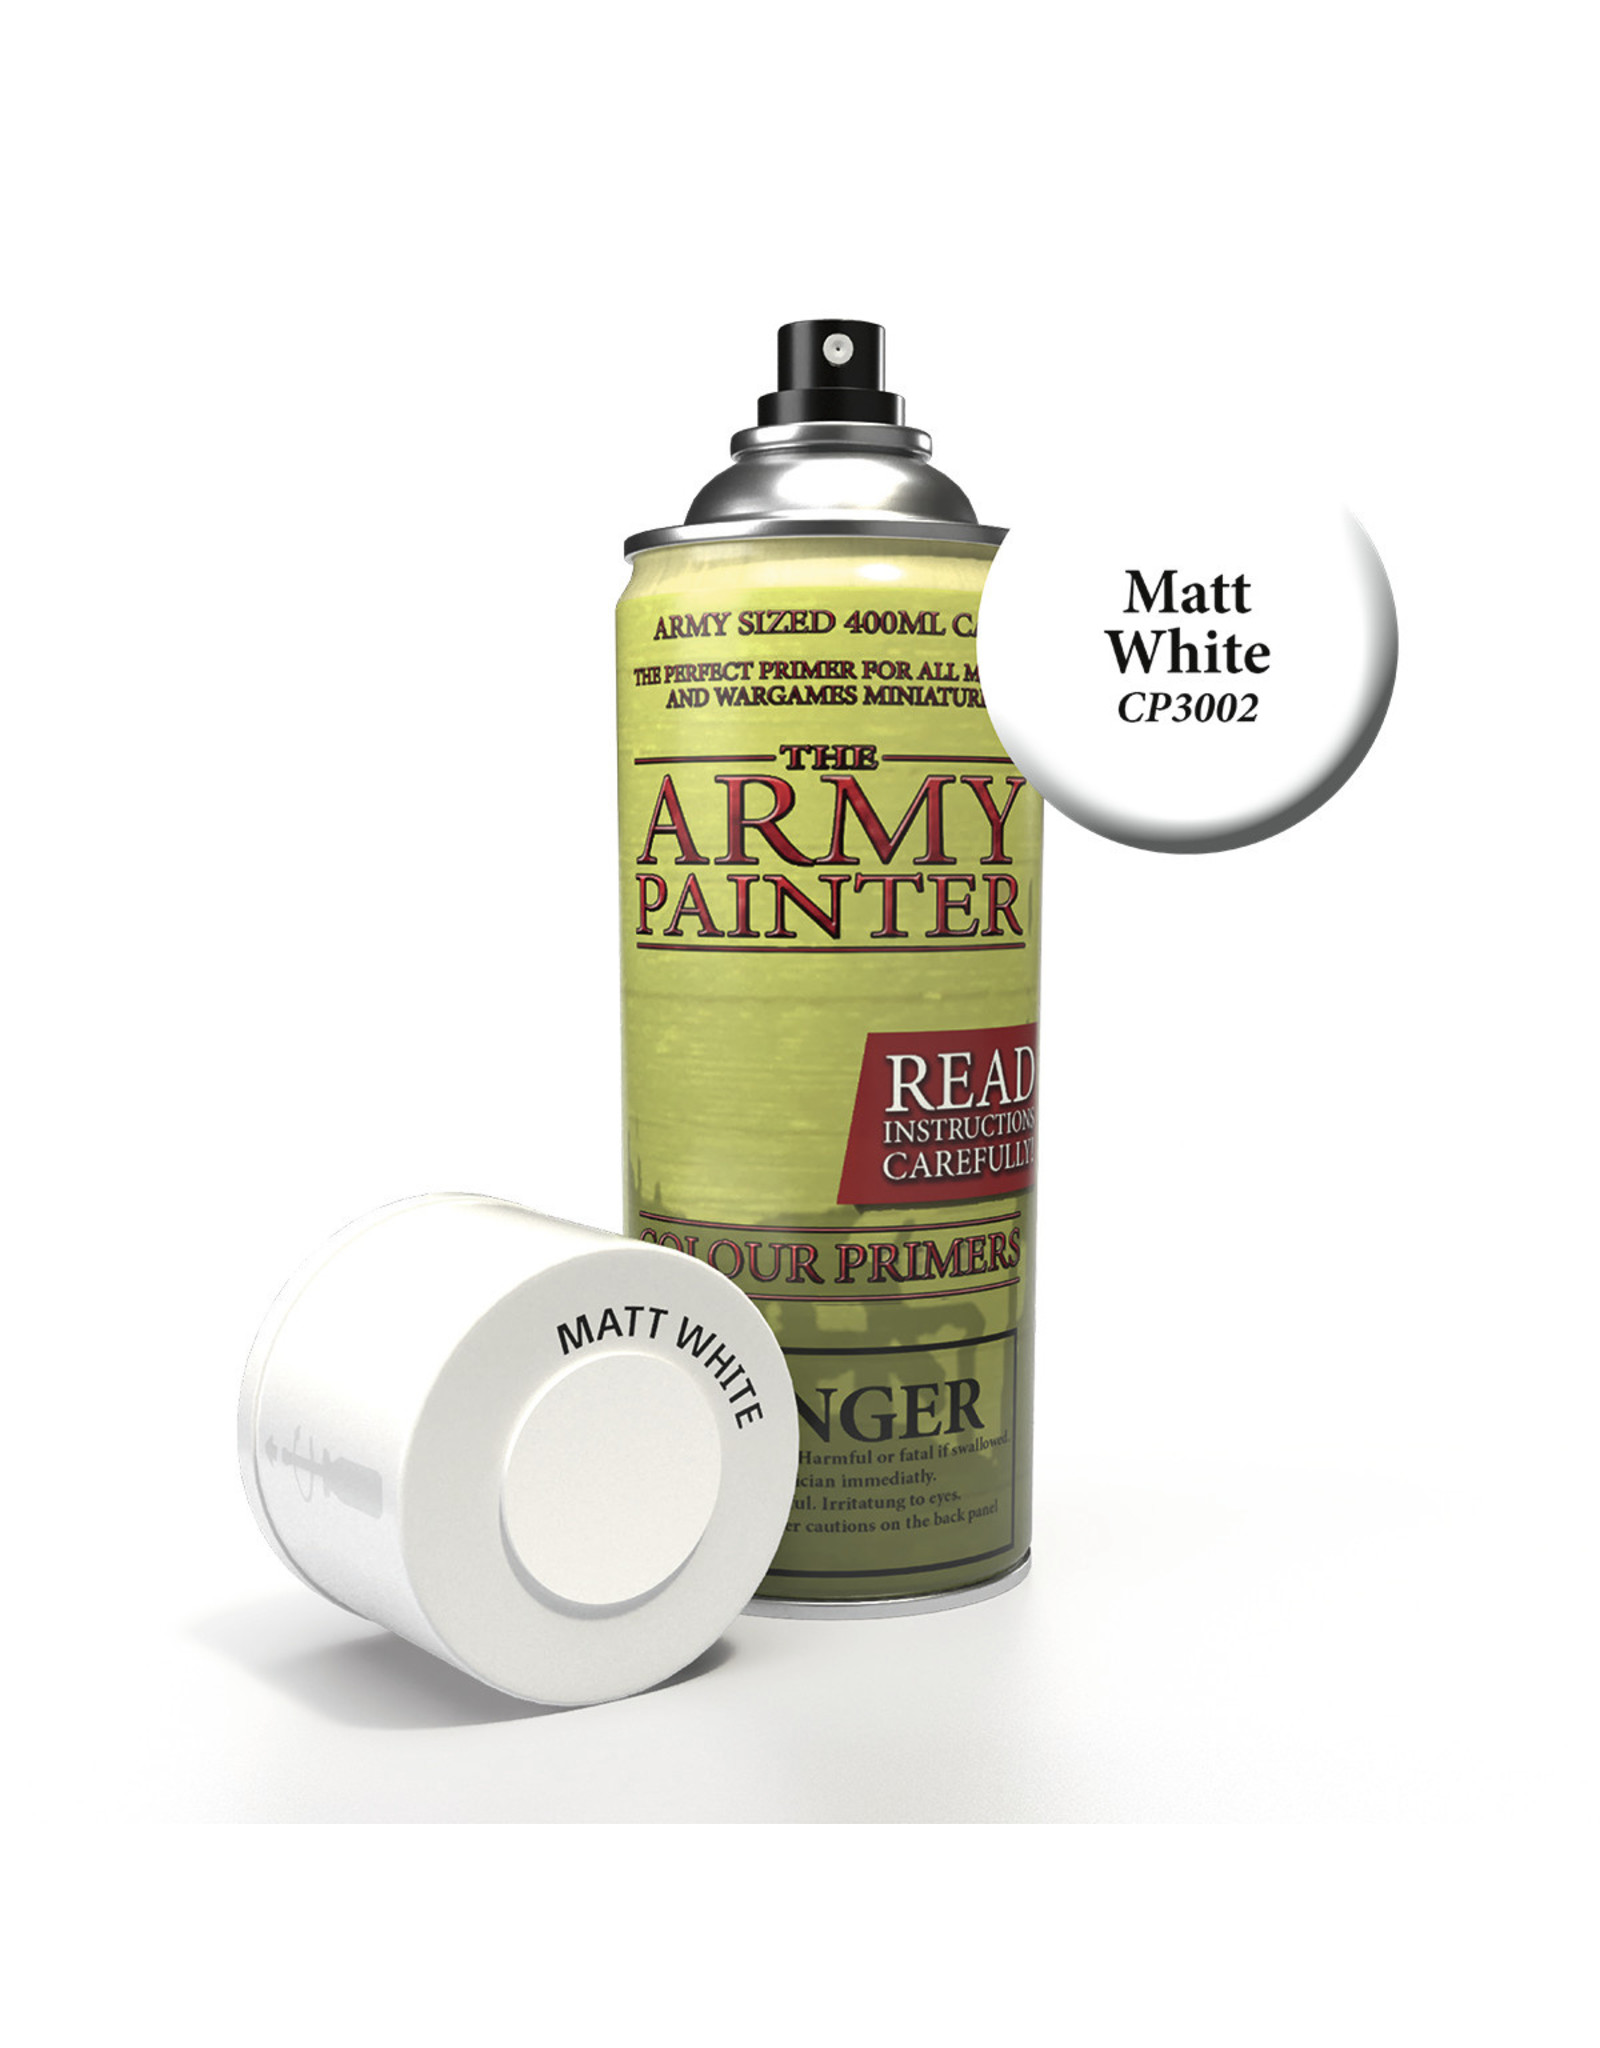 THE ARMY PAINTER ARMY PAINTER BASE PRIMER MATT WHITE